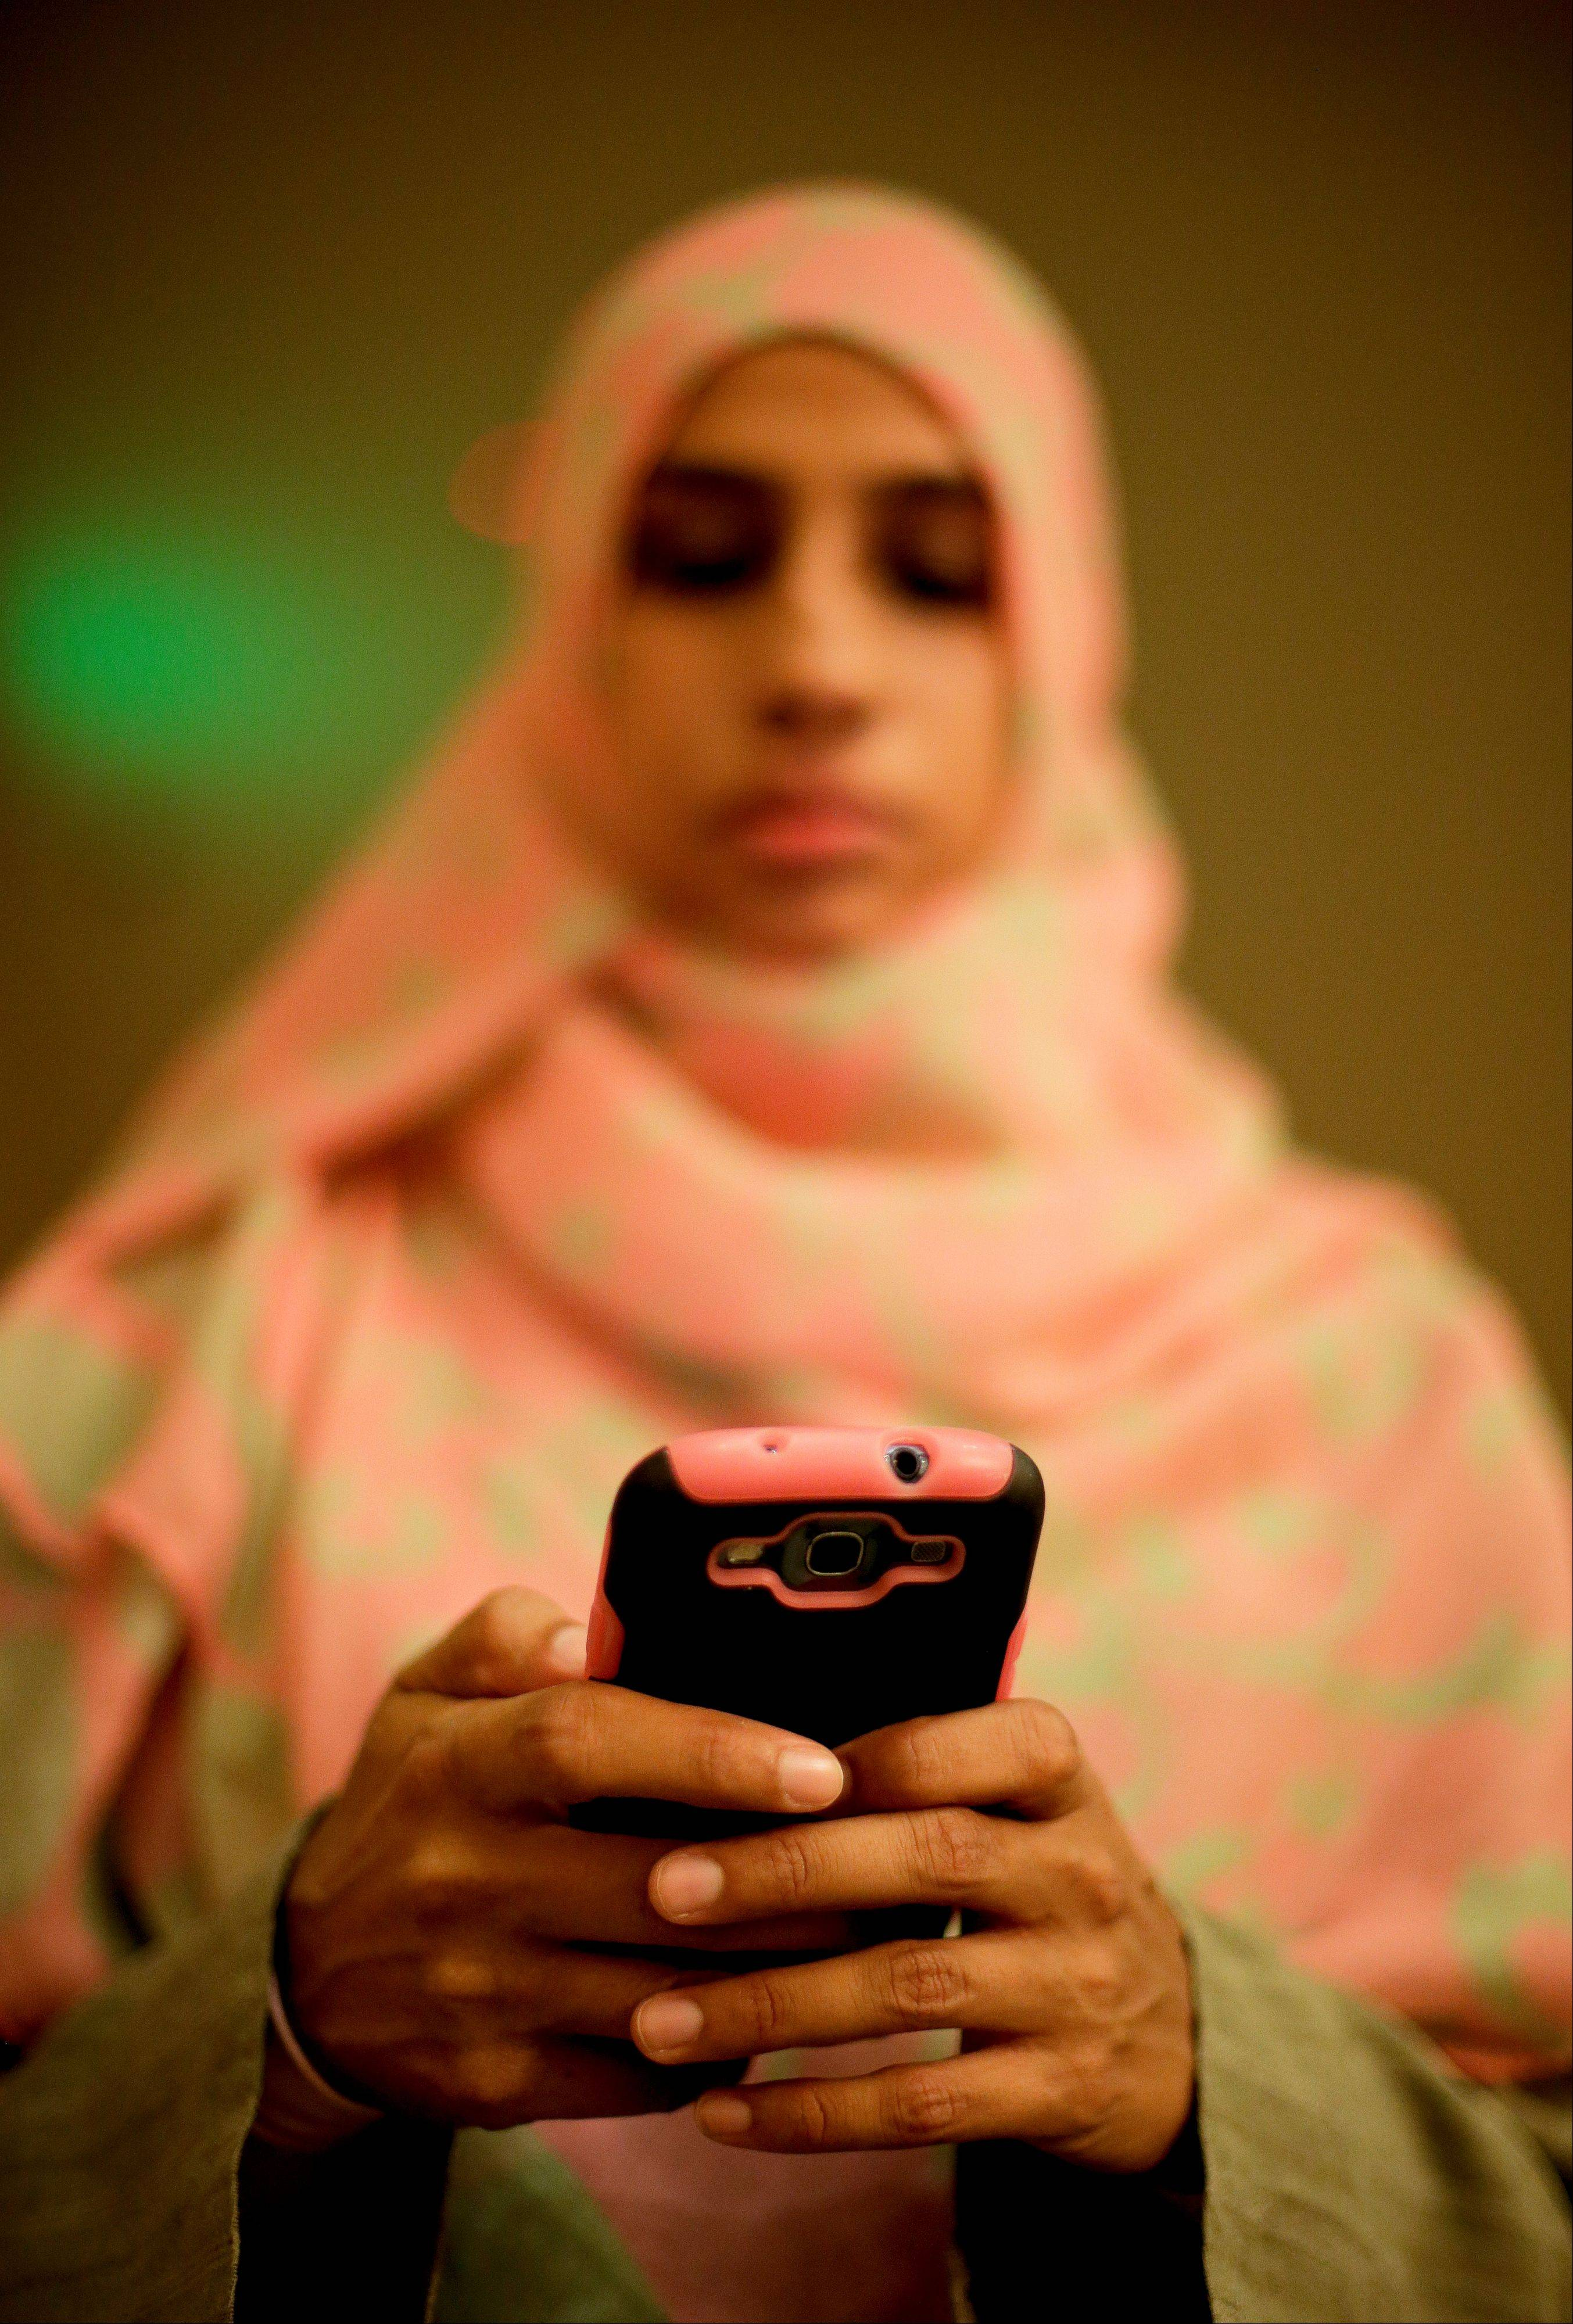 Associated Press Samina Mohammad, who oversees the youth program forwards texted questions to the imam, during a youth group meeting at a mosque, Friday, Sept. 6, in Anaheim, Calif. American Born Imams are rare, 85 percent of full time, paid imams in the U.S. are foreign-born. But, the demand for them is huge as concern grows about young Muslim Americans straying from a faith they no longer find relevant.